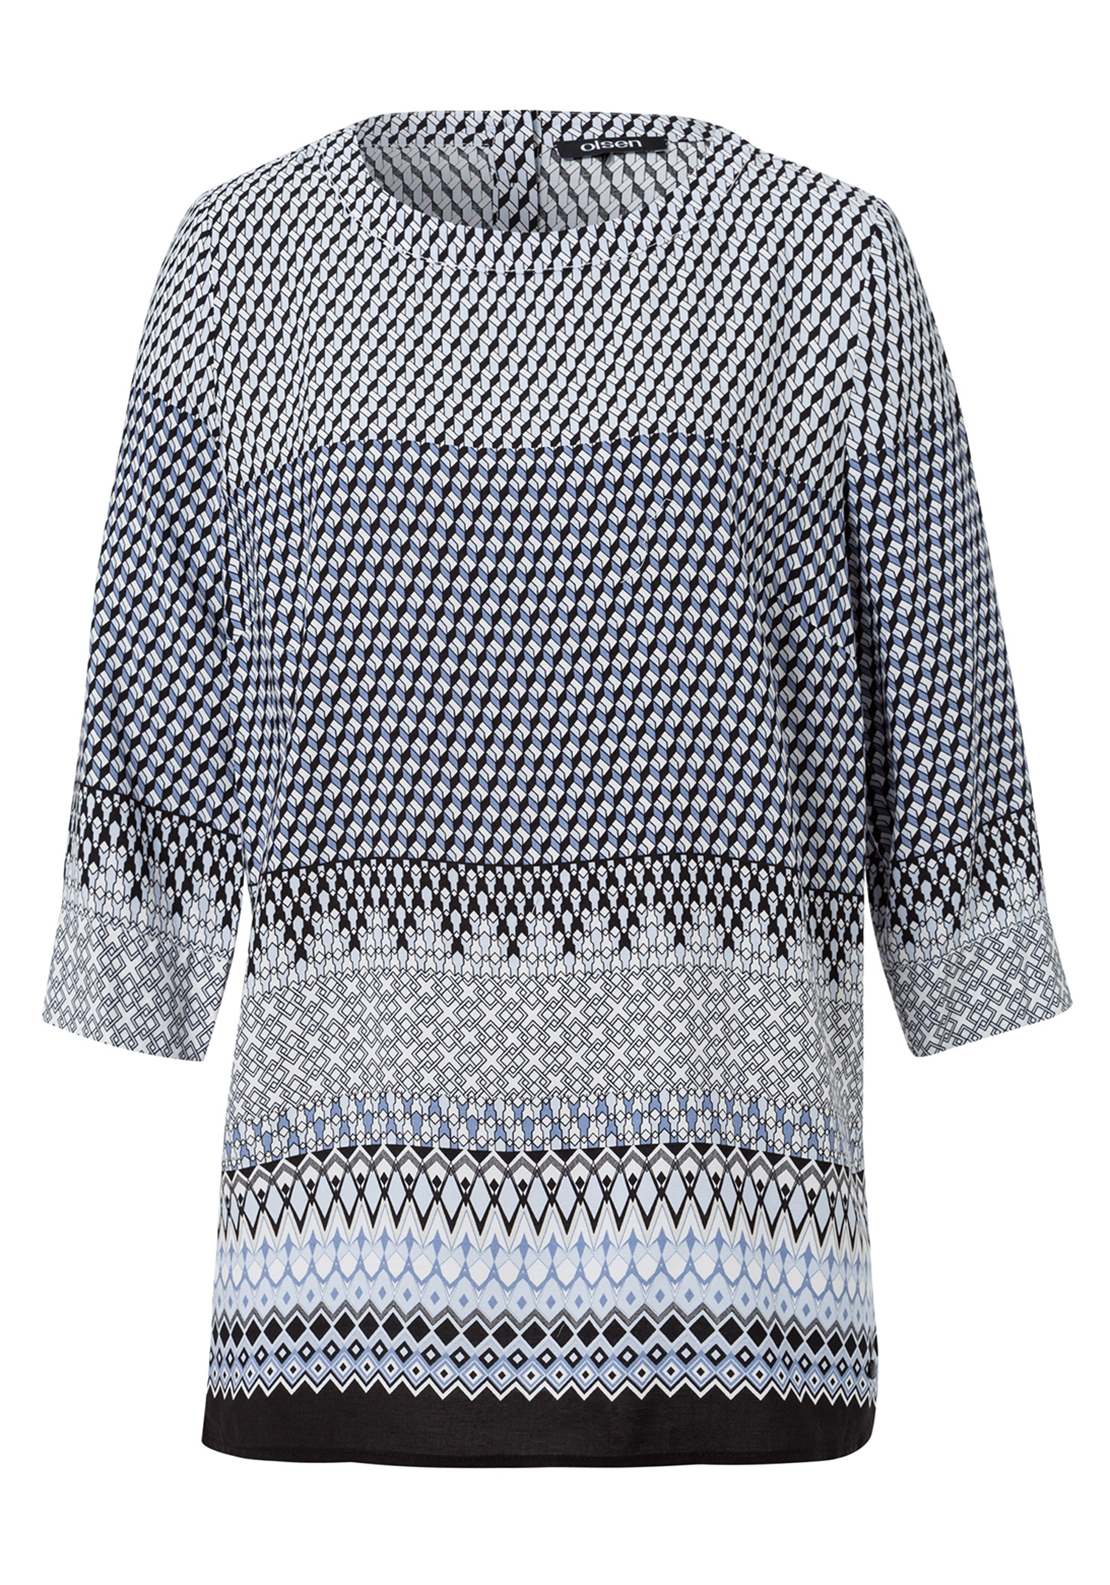 Olsen Geometric Print Cropped Sleeve Top, Blue Multi